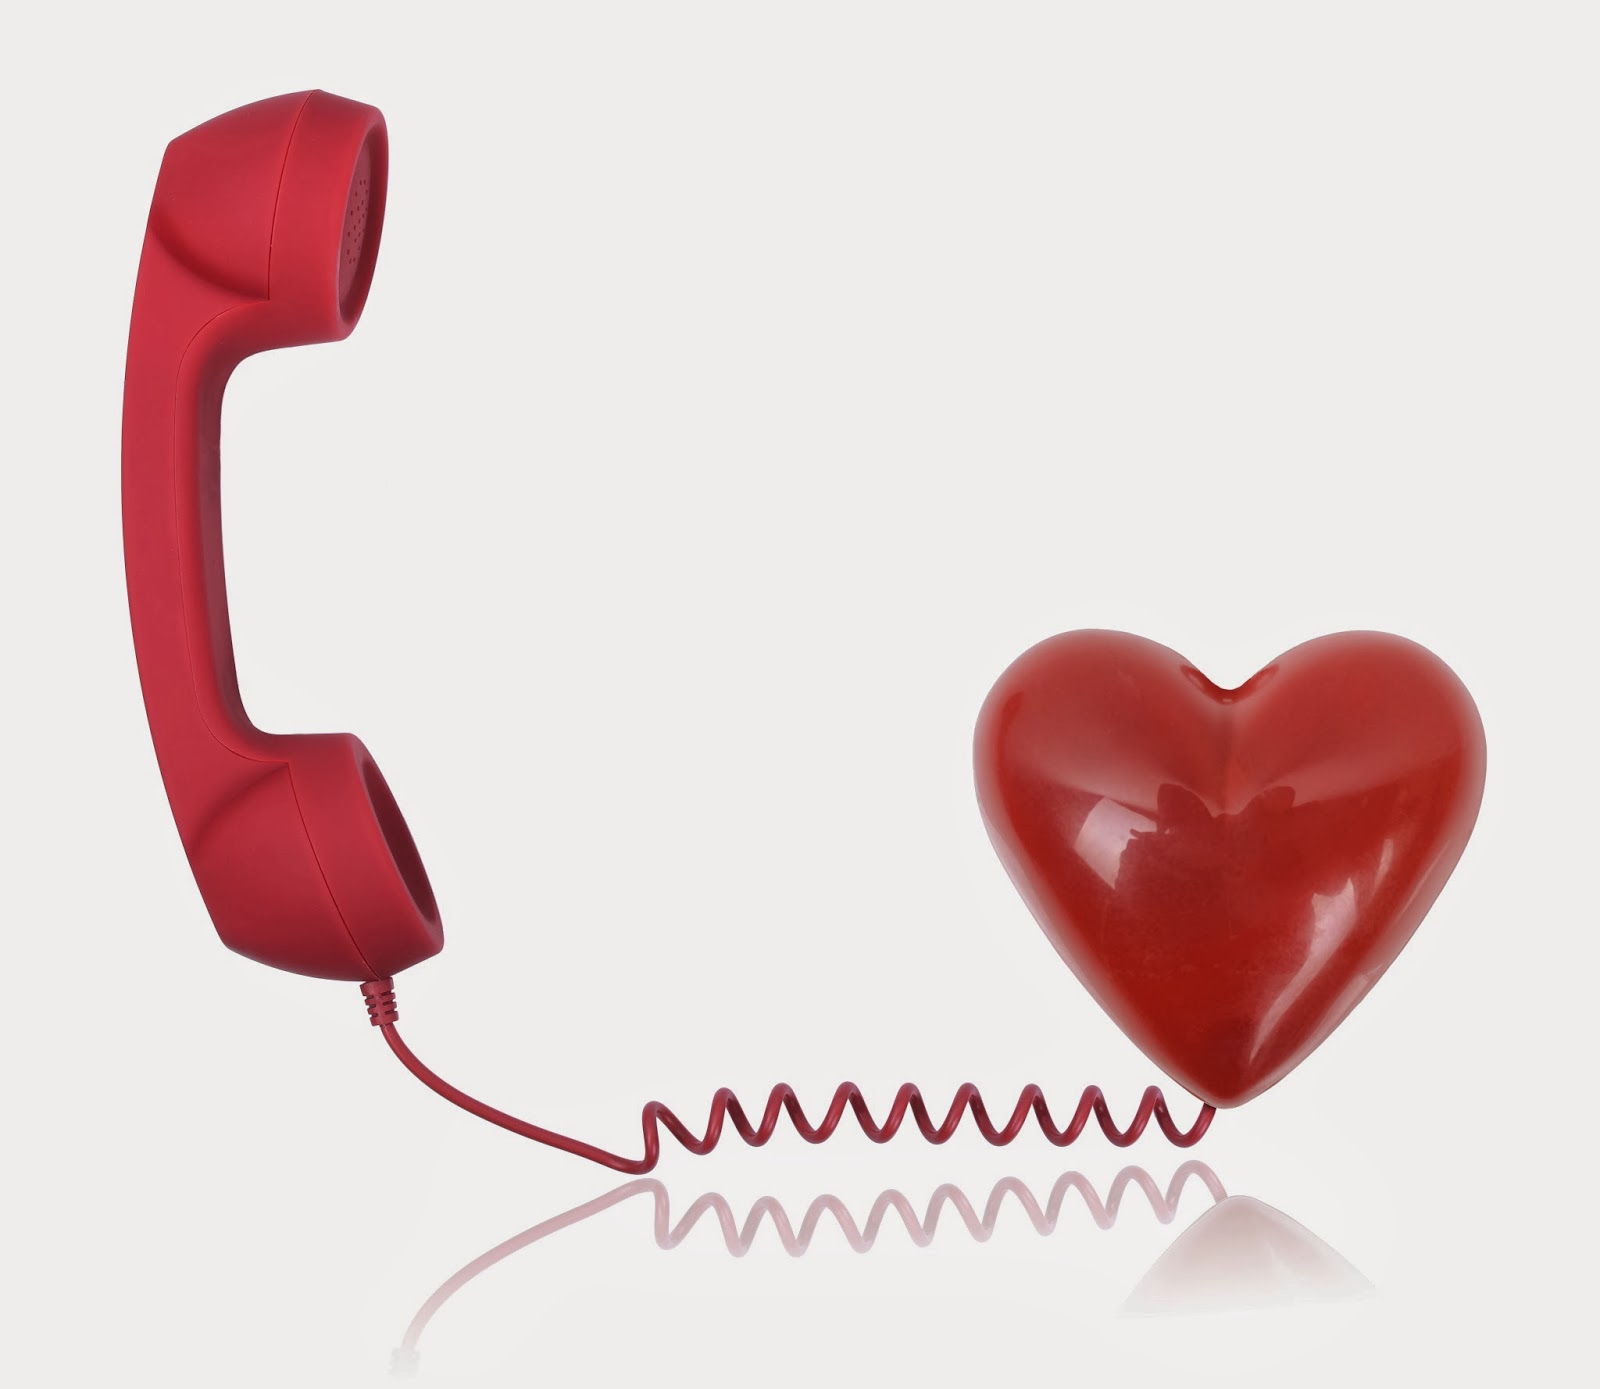 phone connected to a heart